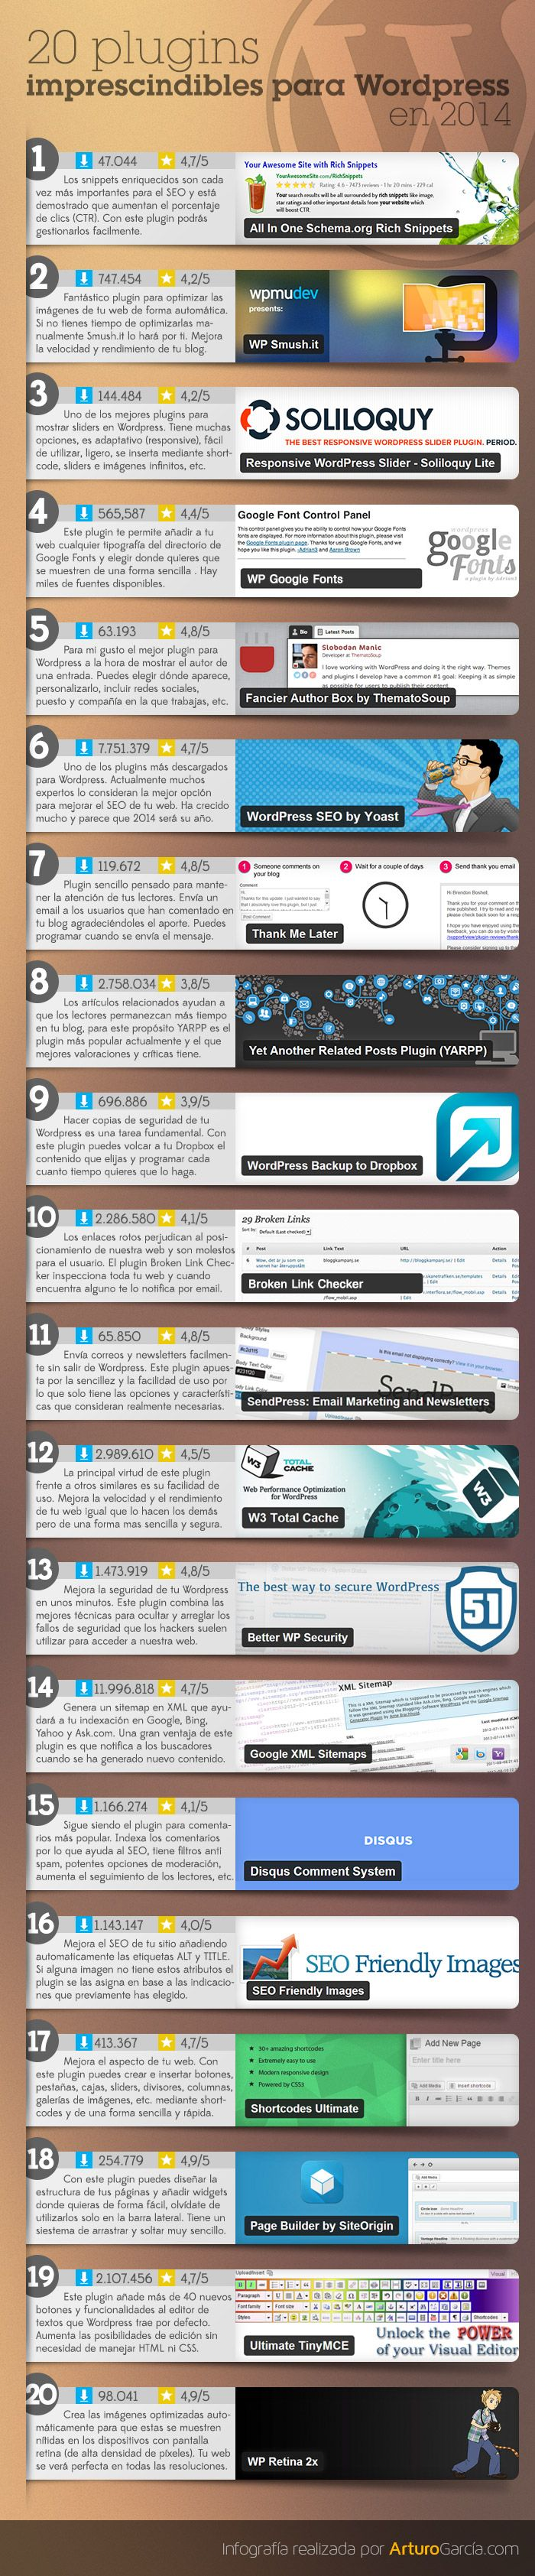 132 best content marketing blogging infographics images on